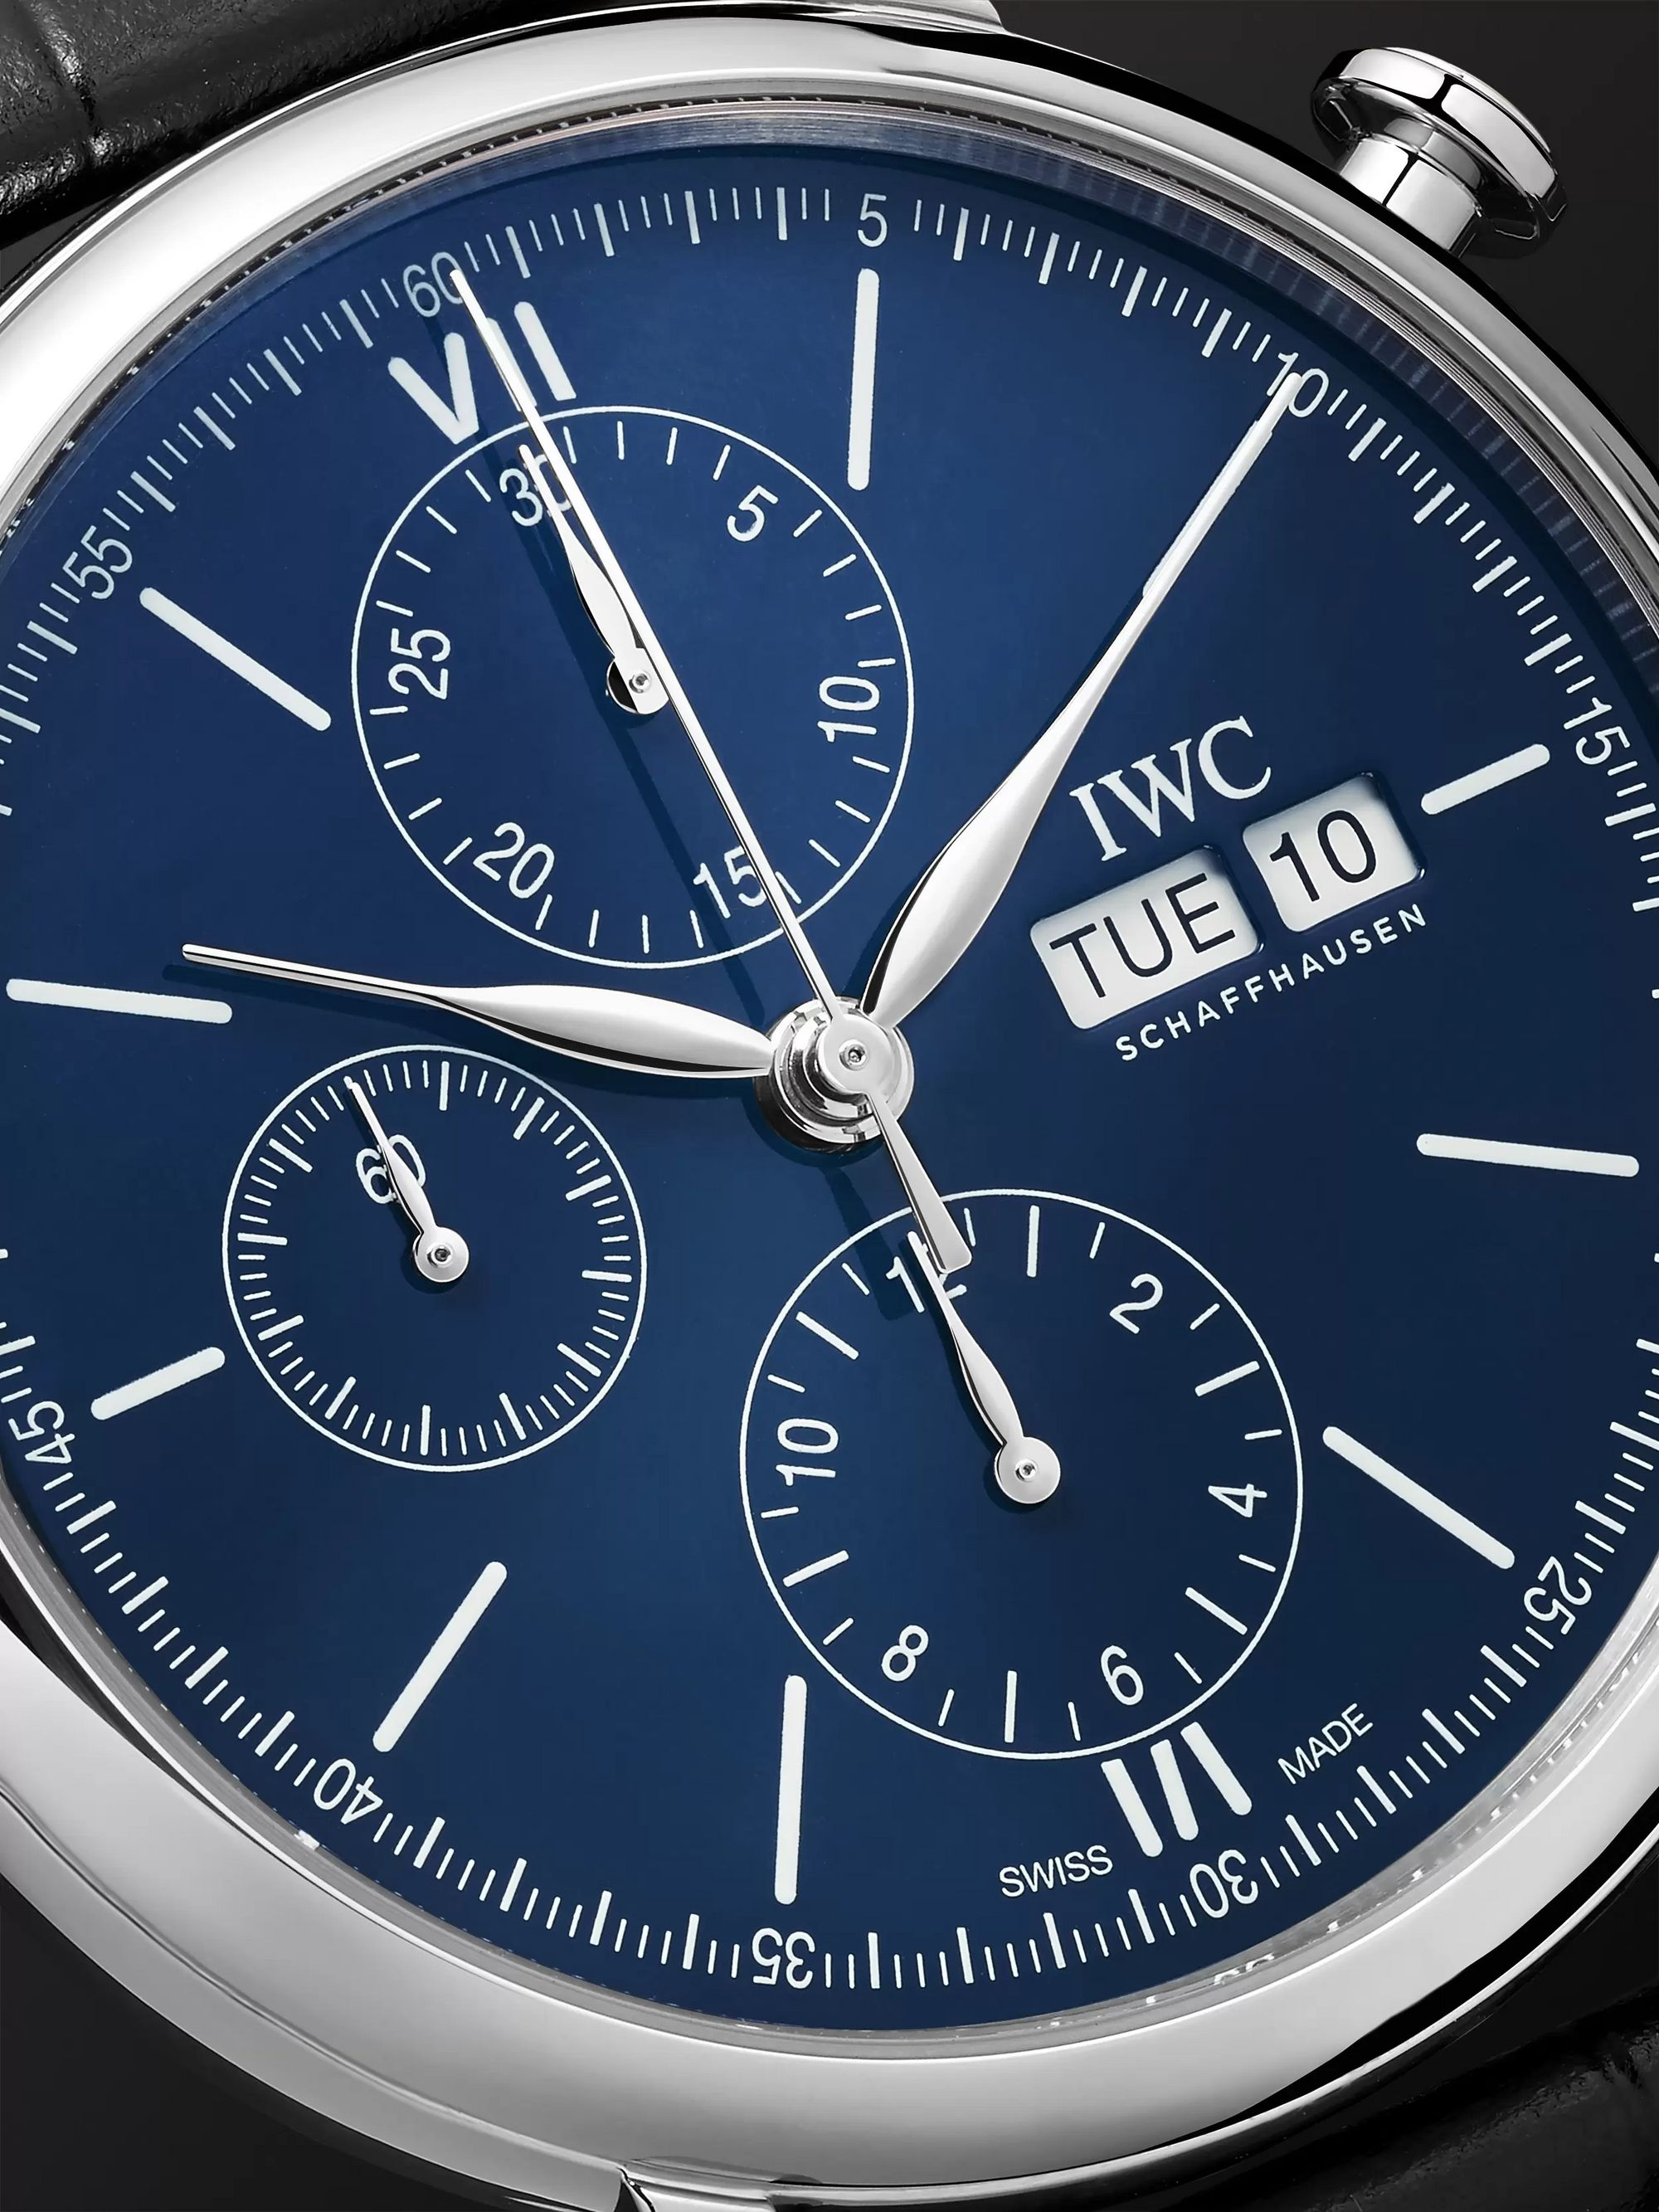 IWC SCHAFFHAUSEN Portofino 150 Years Limited Edition Chronograph 42mm Lacquered-Dial Stainless Steel and Alligator Watch, Ref. No. IW391023